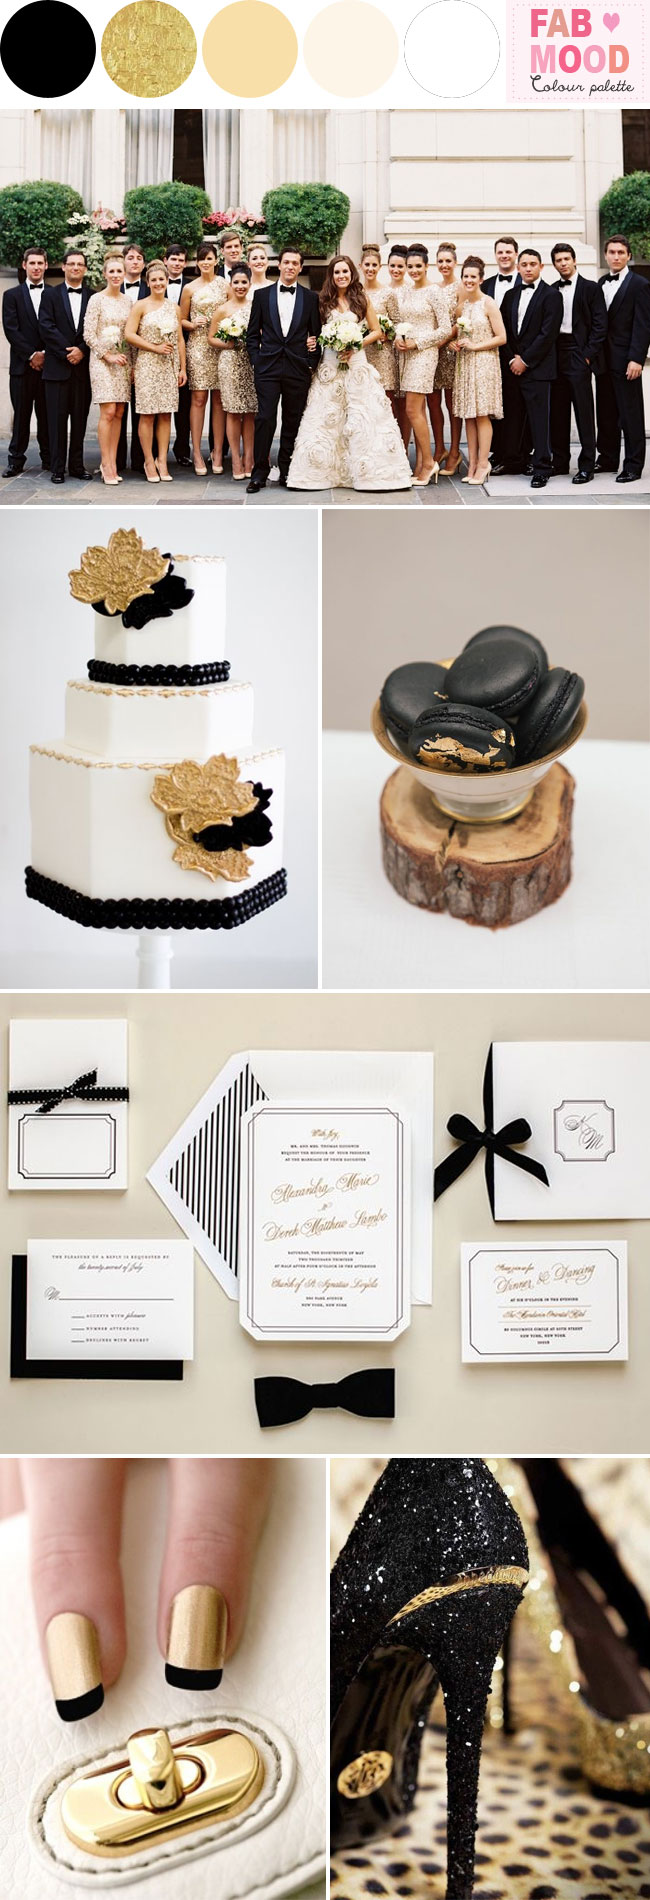 Black white gold wedding colors,black white gold wedding ideas